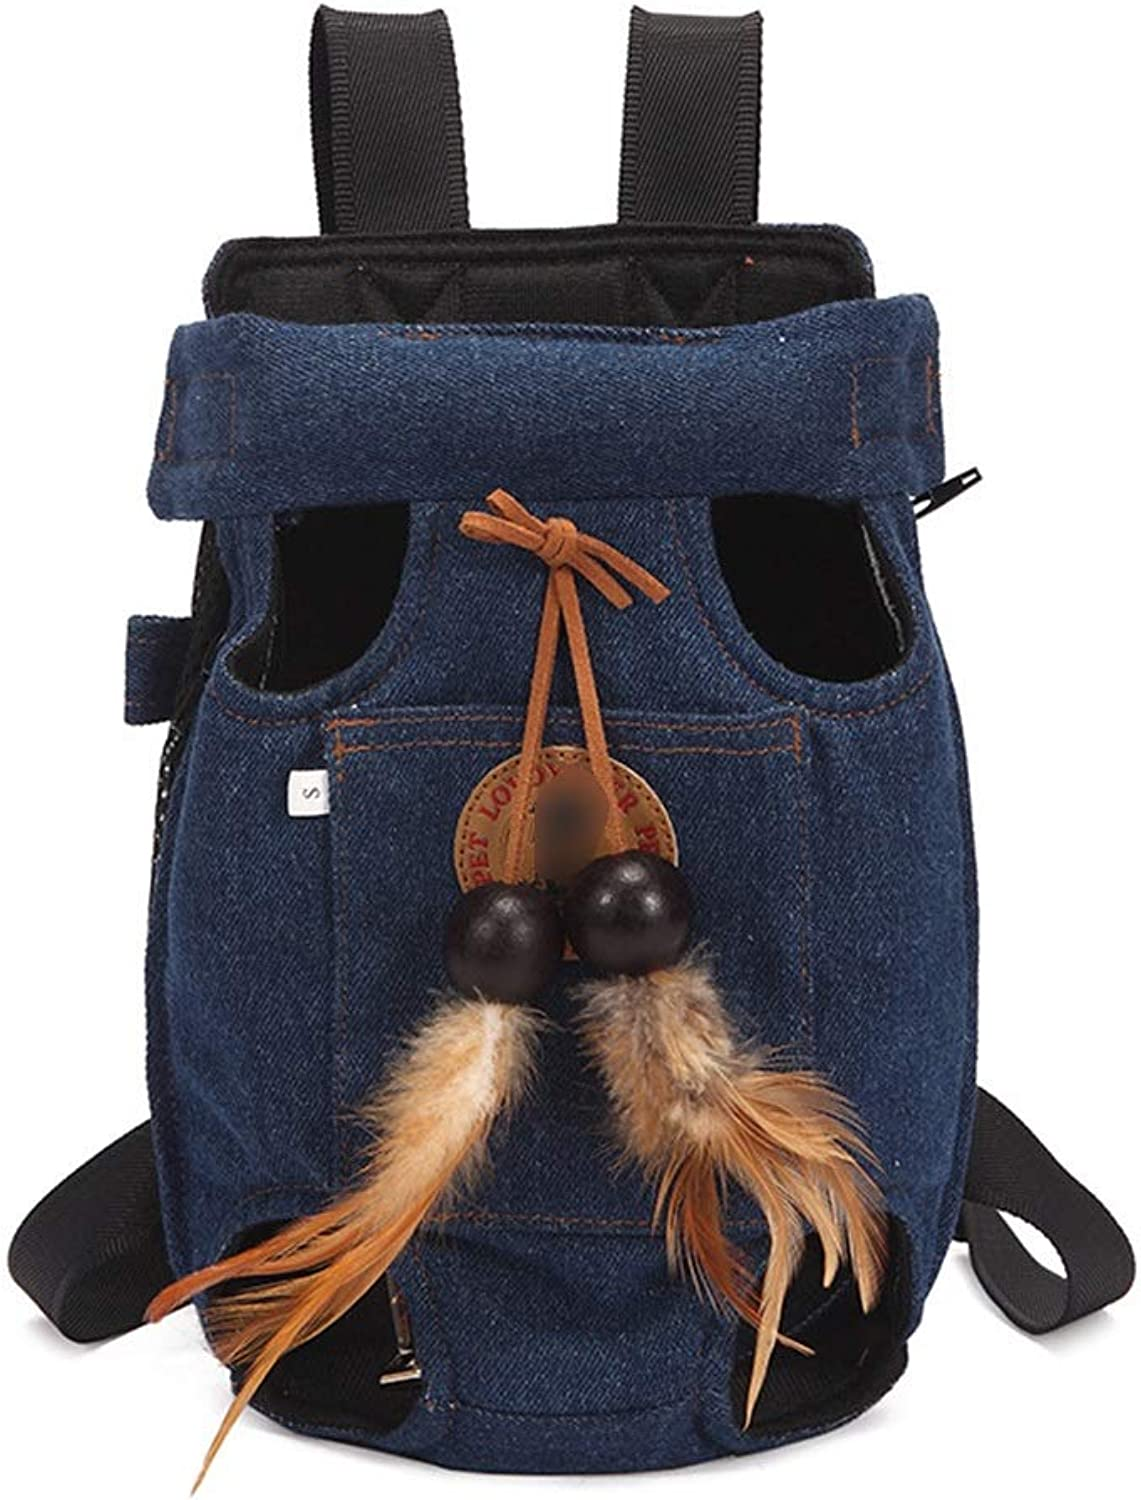 FELICIOO Pet Shoulder Chest Bag Cat Breathable Carrying Bag Out Fourlegged Backpack (color   bluee, Size   M)